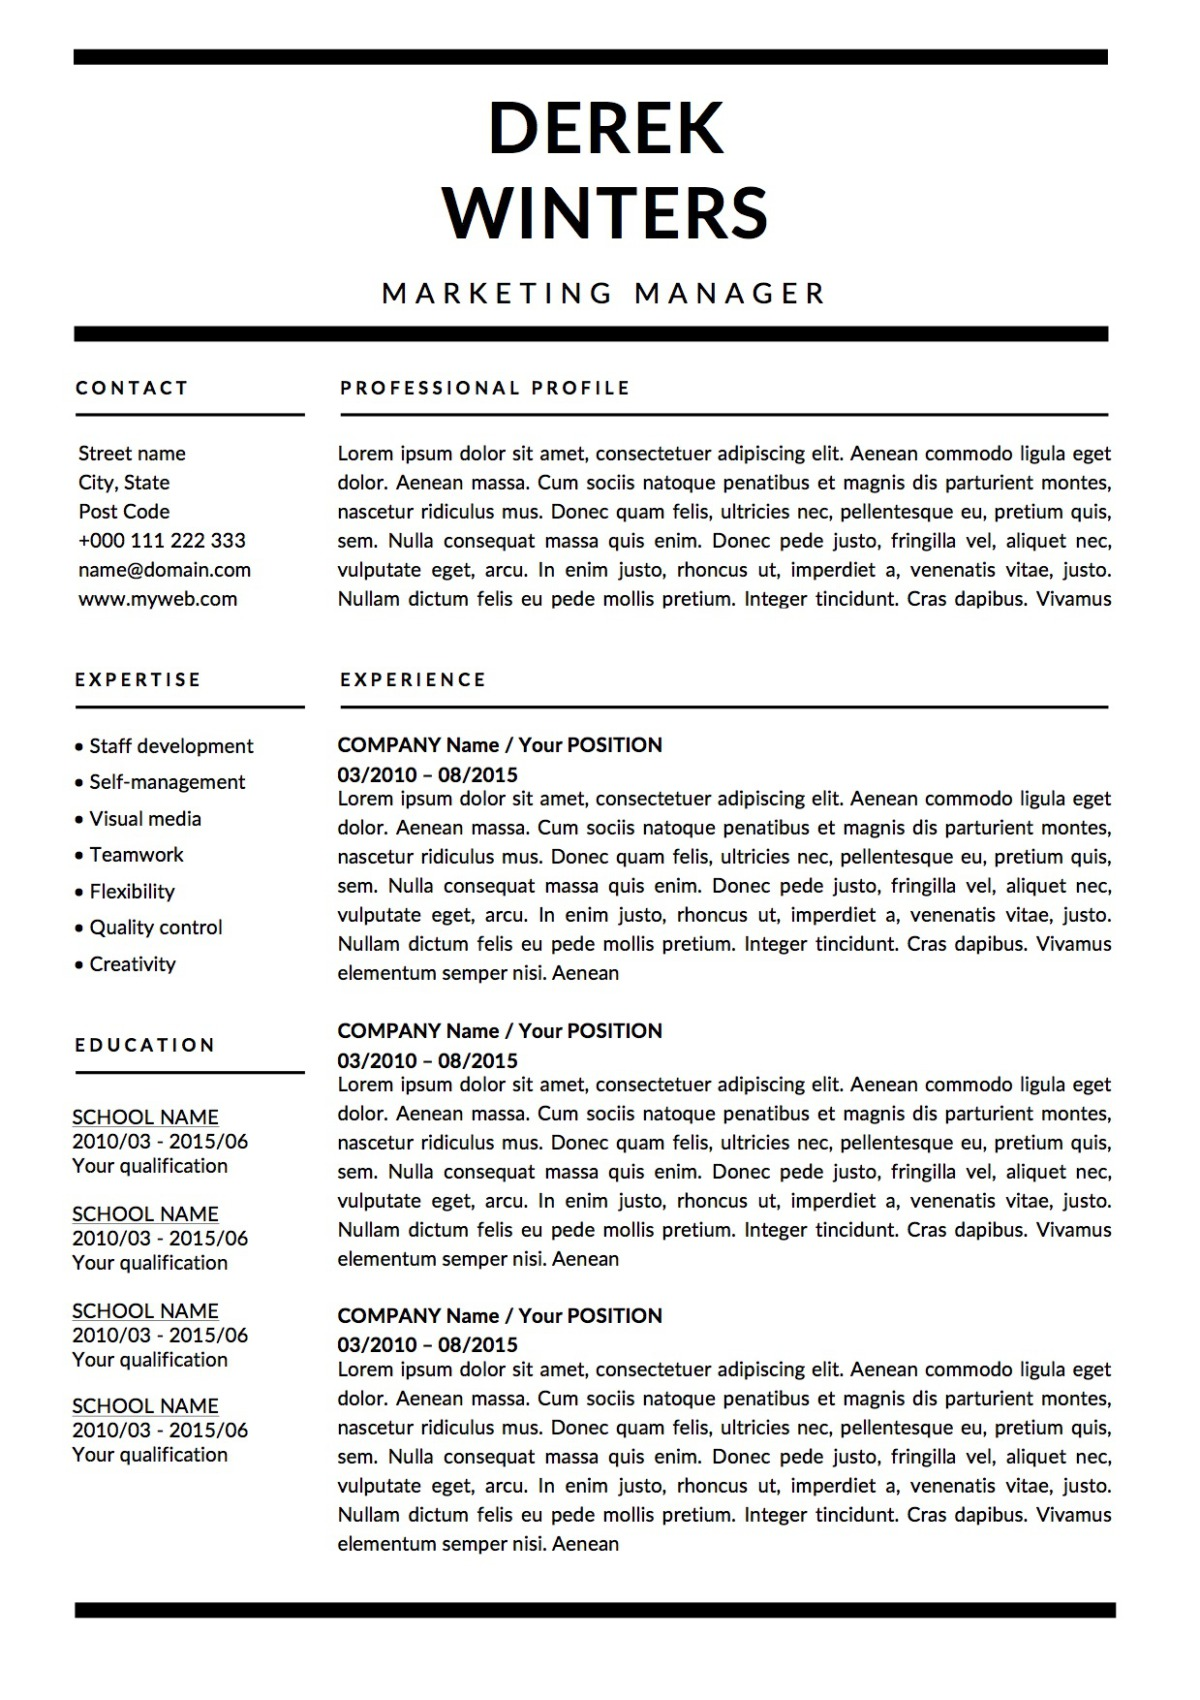 resume sections order